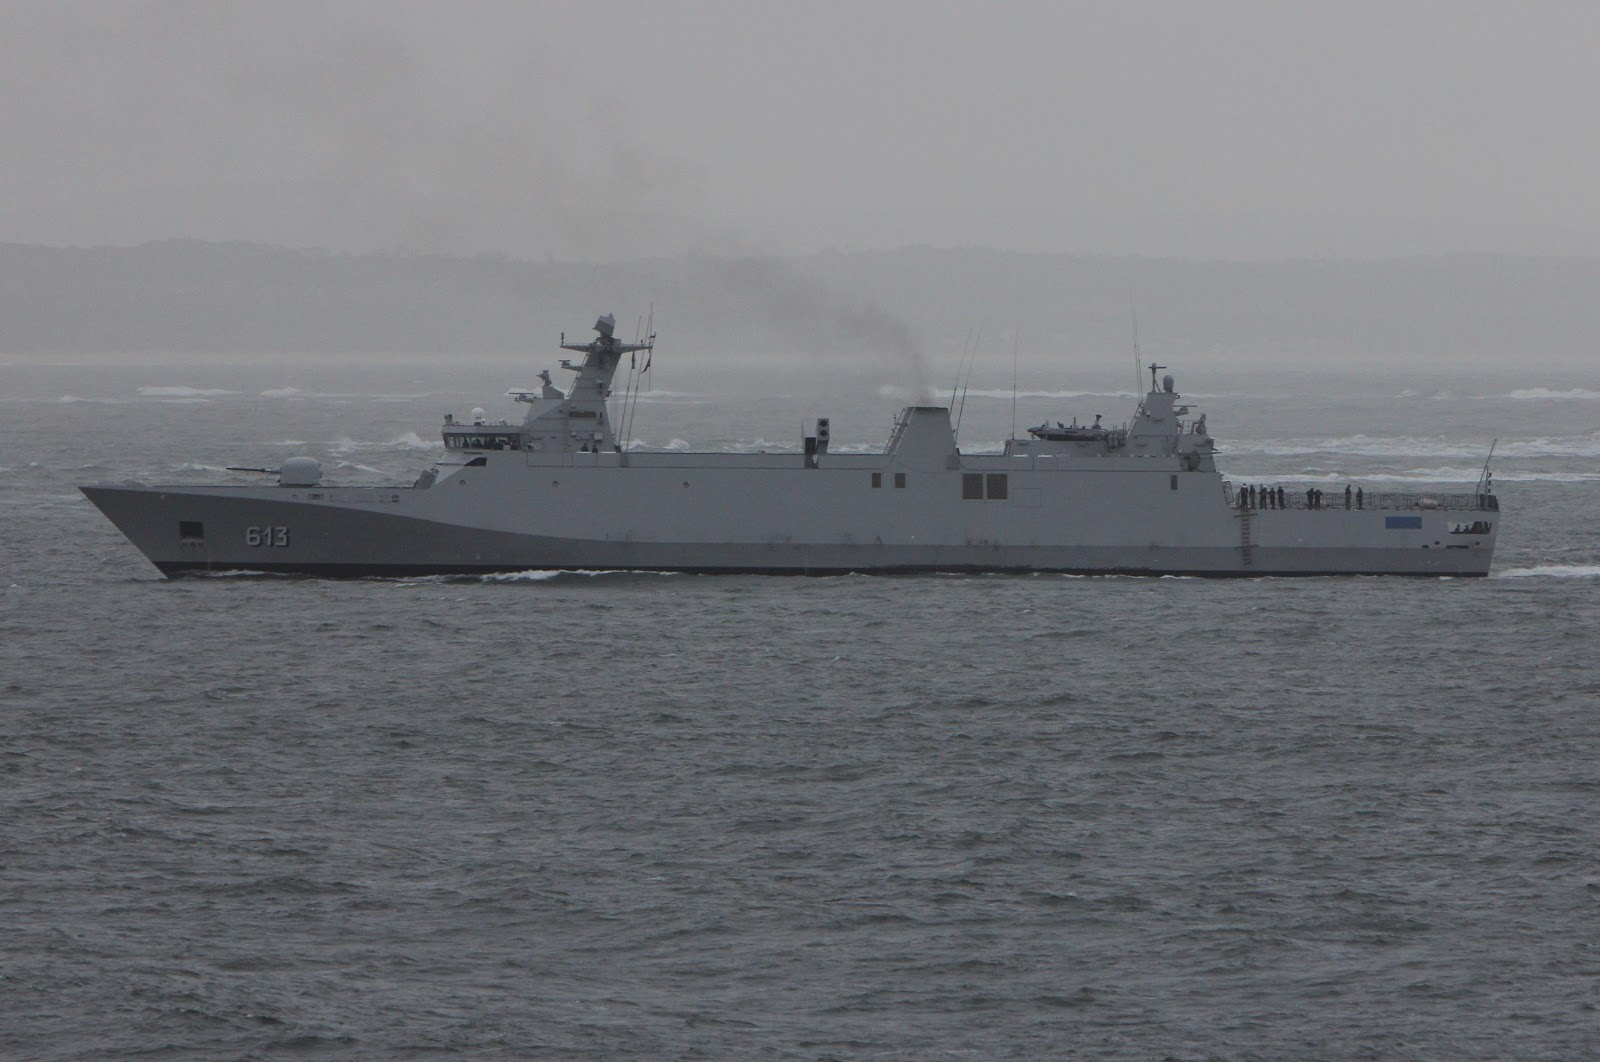 Royal Moroccan Navy Sigma class frigates / Frégates marocaines multimissions Sigma - Page 20 Rmnsta10